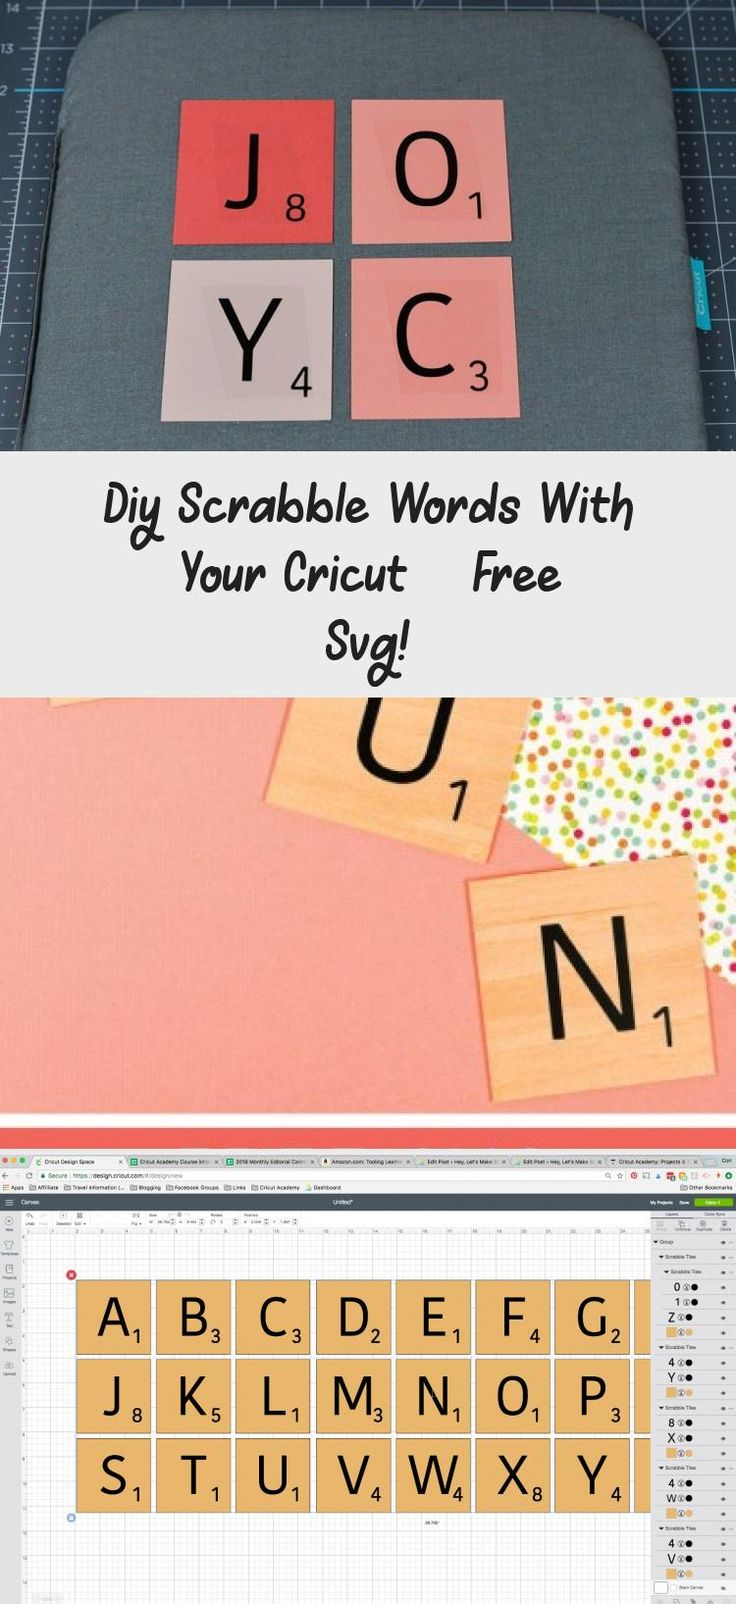 Diy Scrabble Words With Your Cricut Free Svg Scrabble